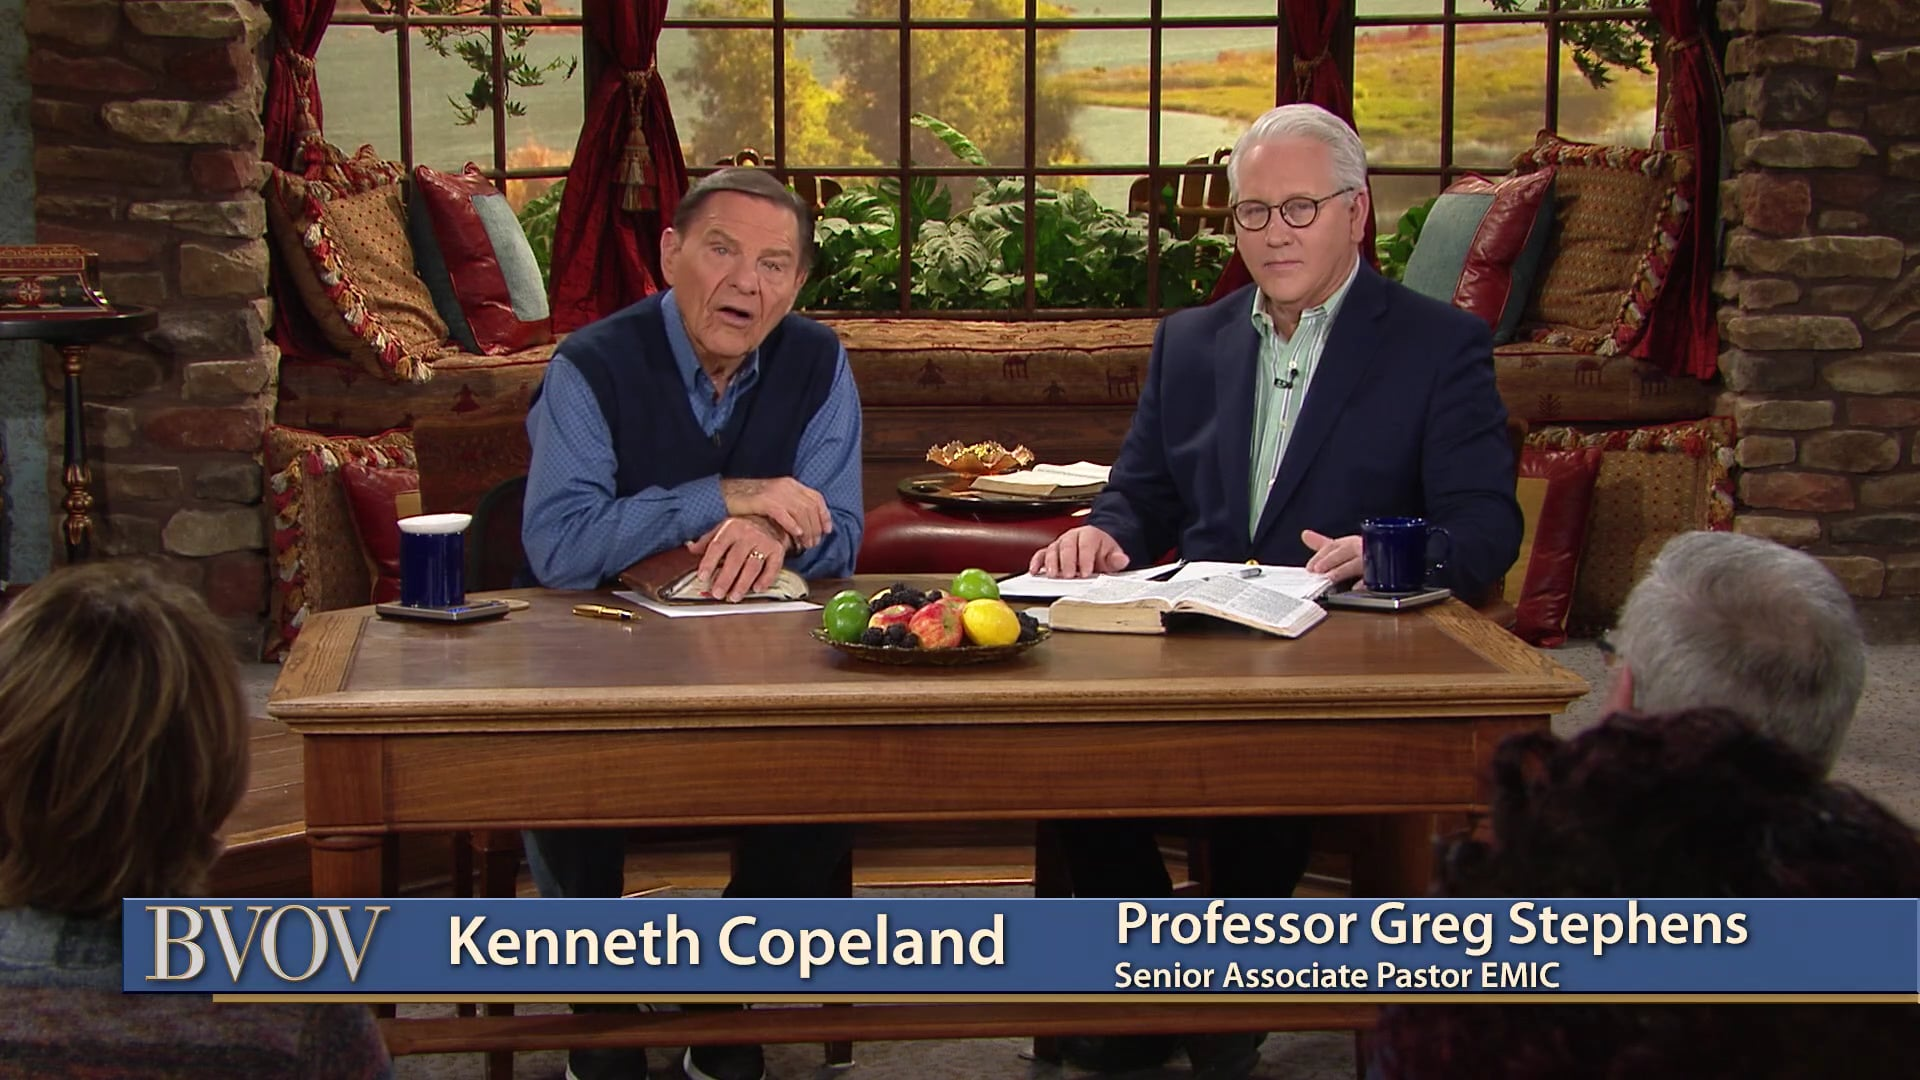 Watch Kenneth Copeland and Professor Greg Stephens on Believer's Voice of Victory as they unpack the Genesis 12:3 partnership blessing. Learn why you are blessed through covenant partnership and why you must always stay on THE BLESSING side of life!